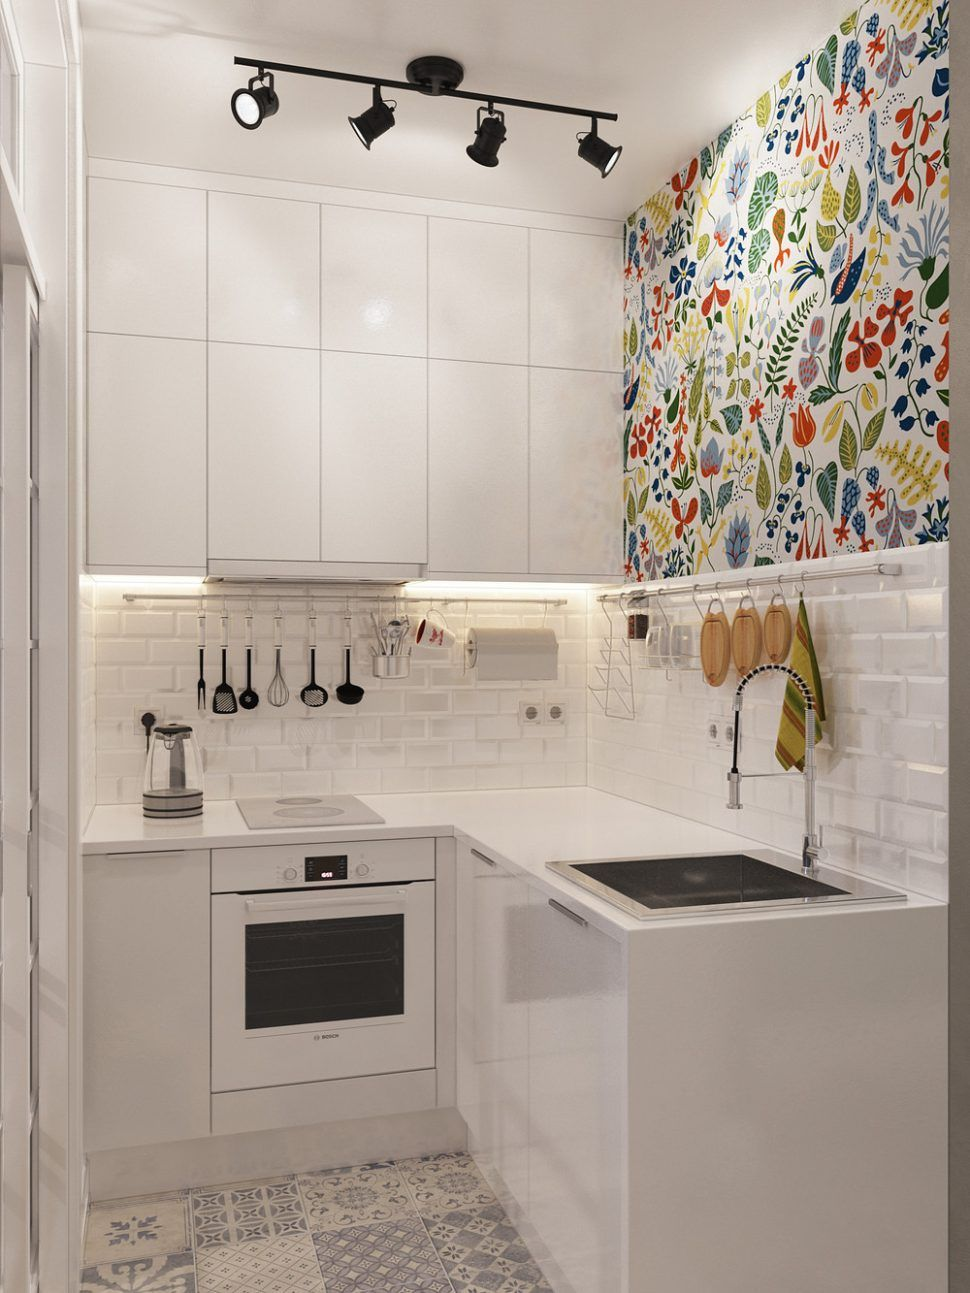 100 Very Small Kitchen Designs  Best Paint For Interior Check Impressive Very Small Kitchen Designs Design Inspiration